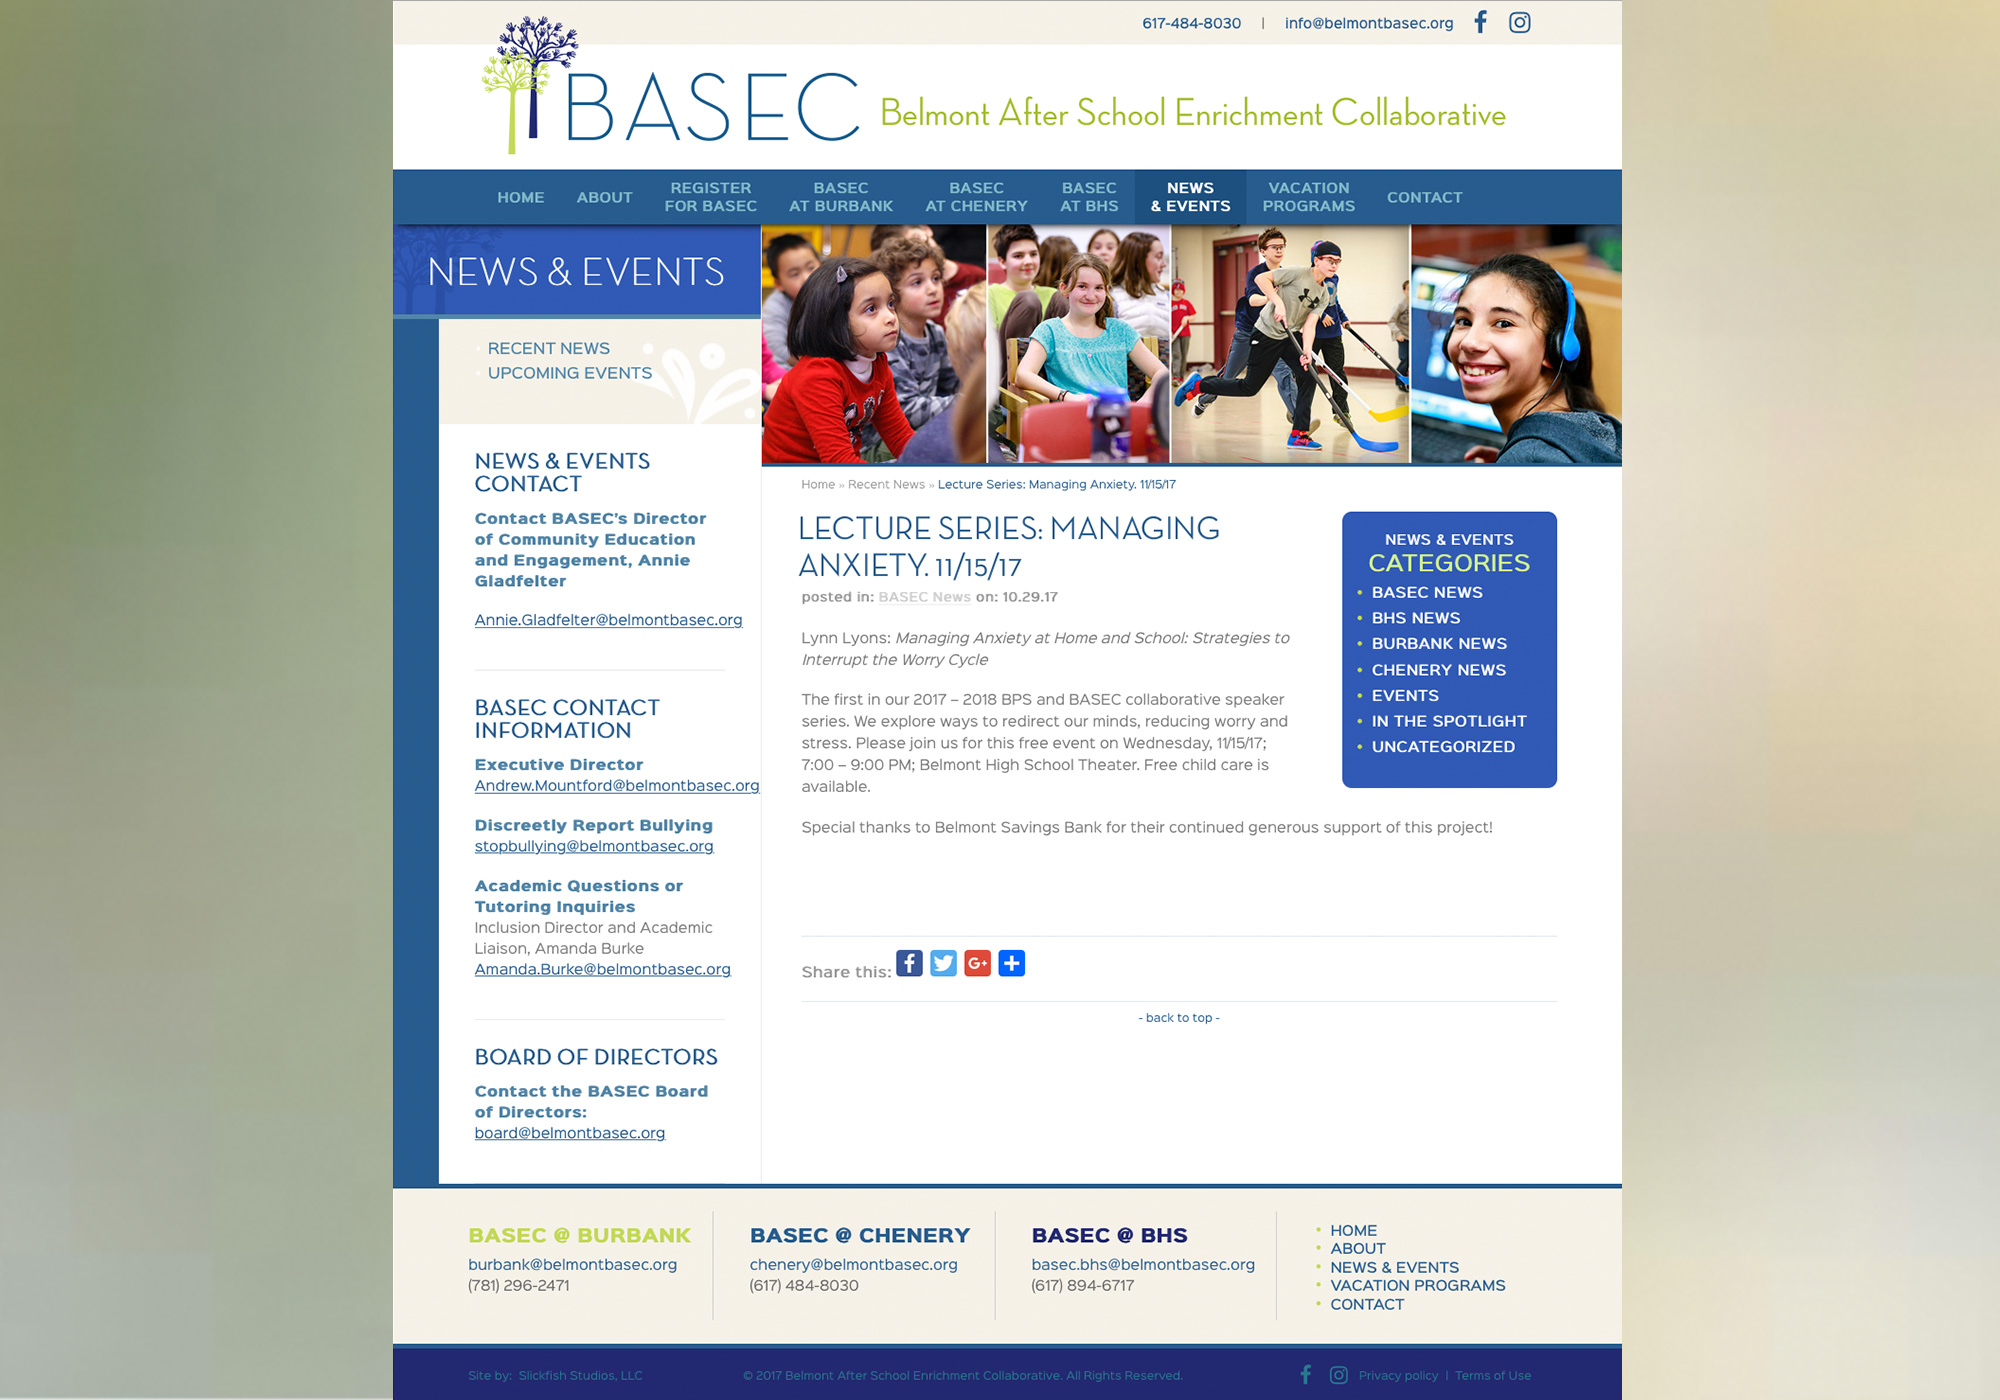 There's a lot going on at Belmont BASEC in Massachusetts! Find out what on their News & Events blog programmed by Maine design company, SlickFish Studios.